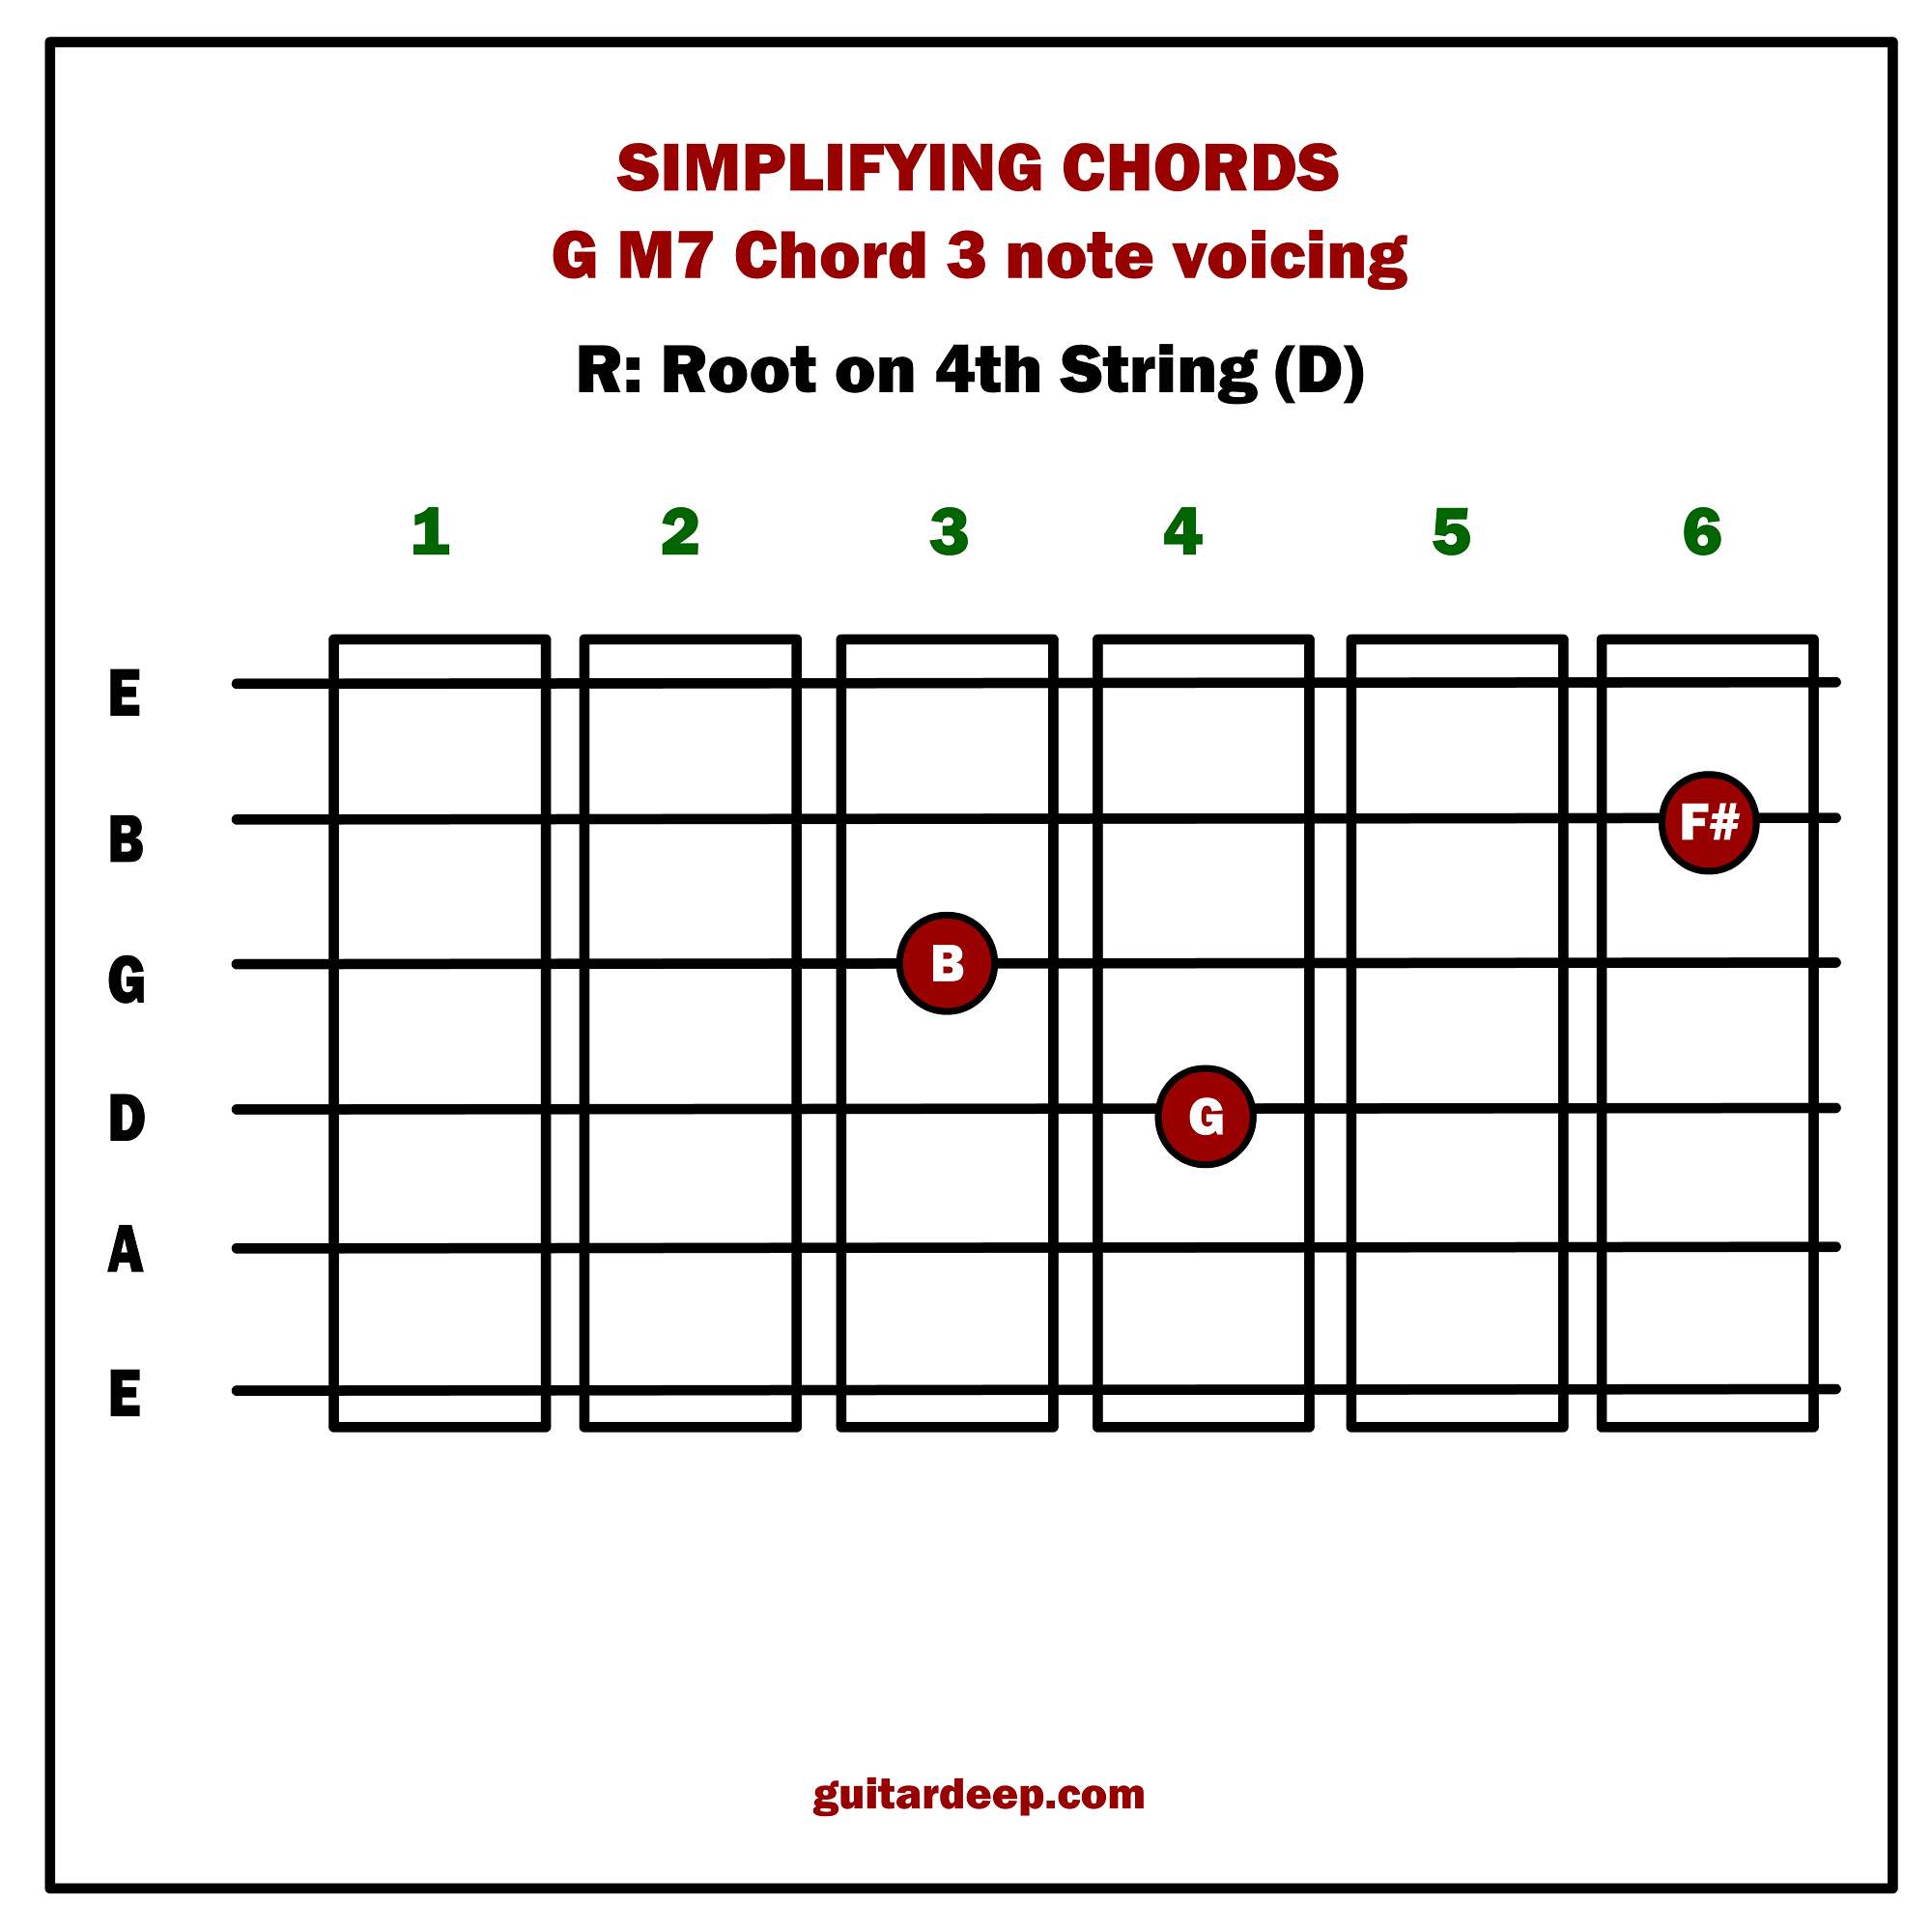 Lesson 07 simplifying guitar chords part 02 guitar deep now lets apply all that to c major key and its iim7 v7 i proggression hexwebz Choice Image